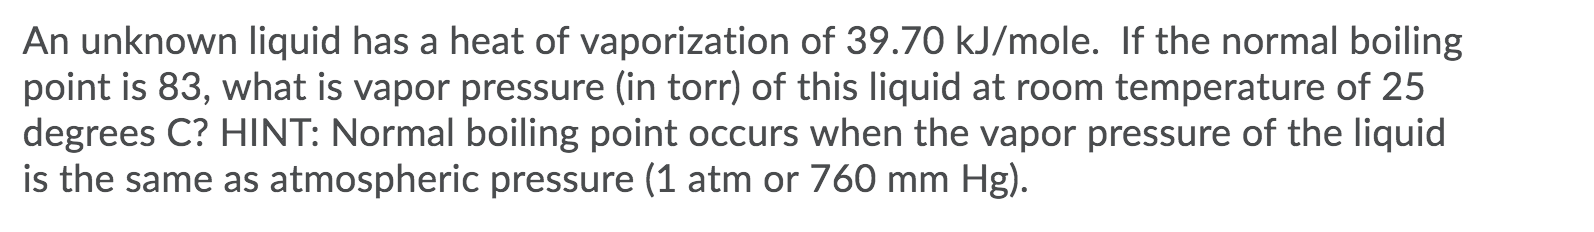 An unknown liquid has a heat of vaporization of 39.70 kJ/mole. If the normal boiling point is 83, what is vapor pressure (in torr) of this liquid at room temperature of 25 degrees C? HINT: Normal boiling point occurs when the vapor pressure of the liquid is the same as atmospheric pressure (1 atm or 760 mm Hg).